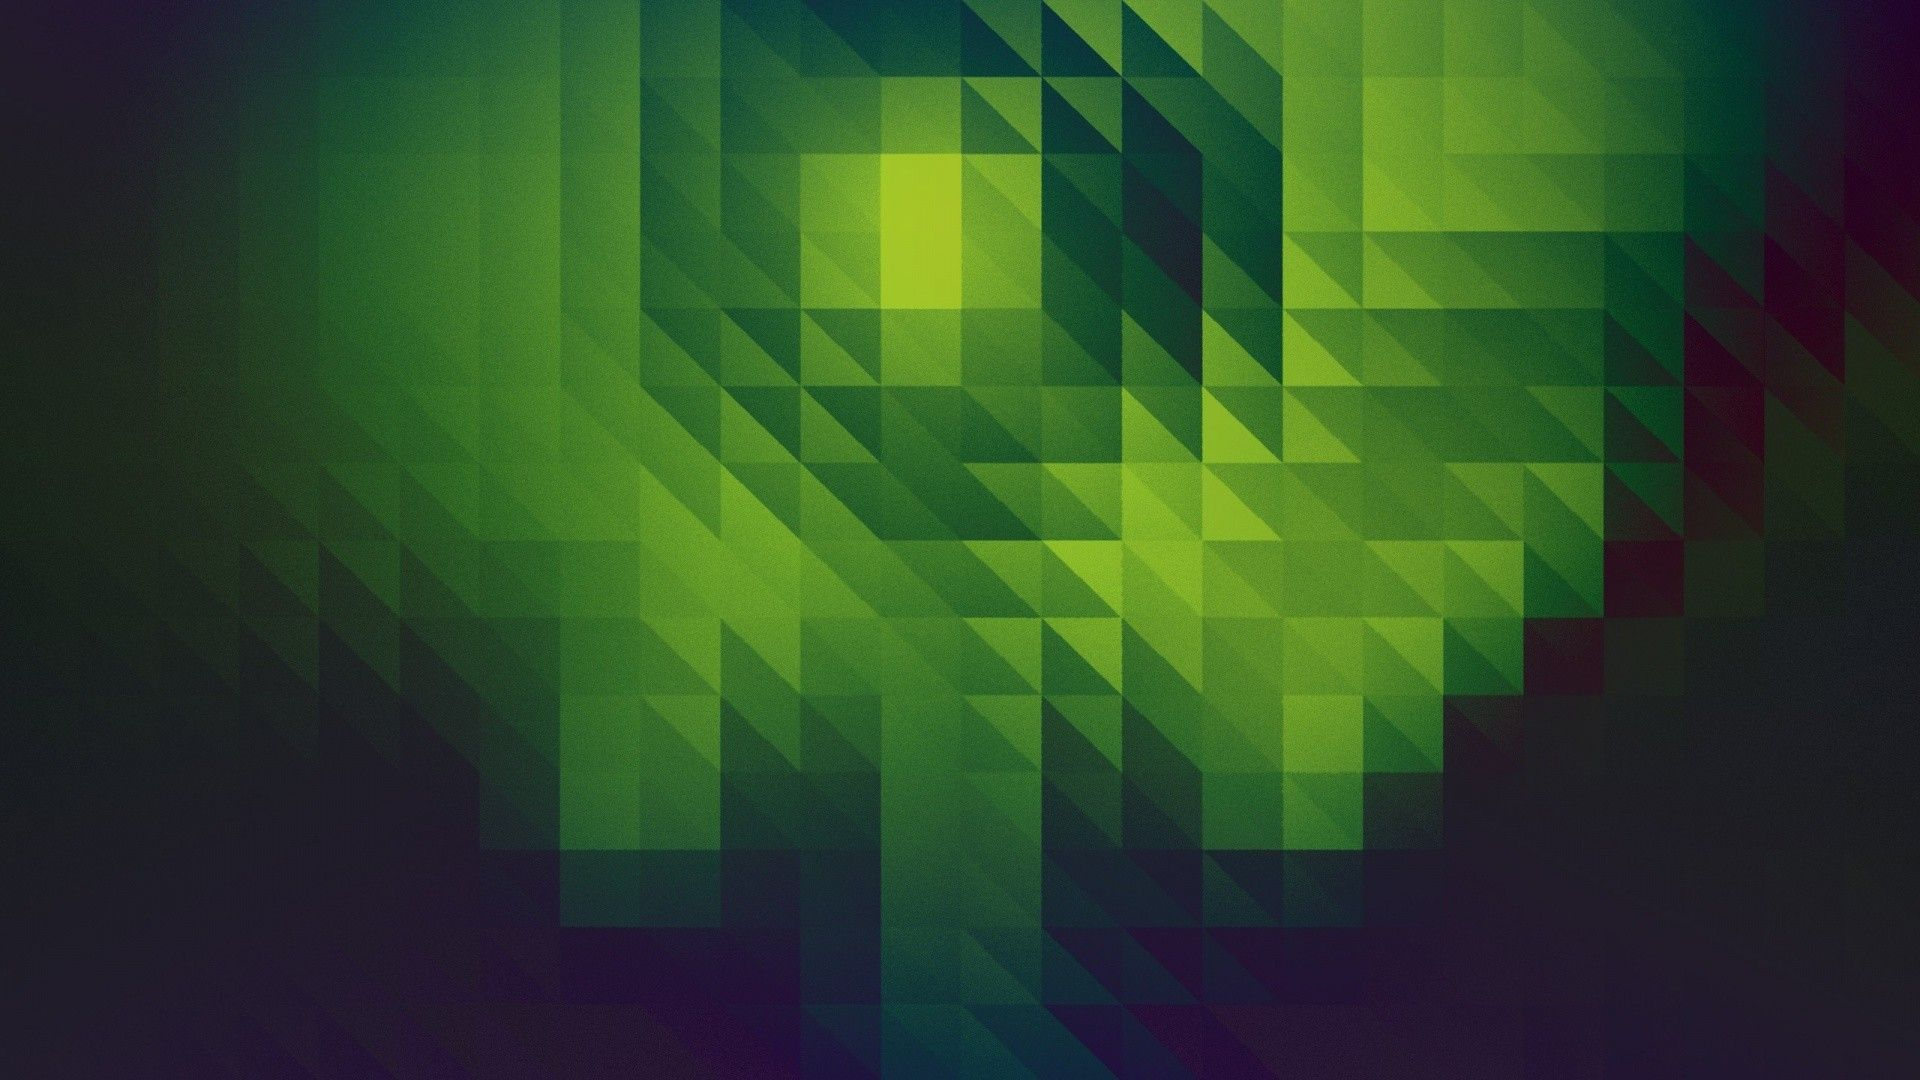 Green Abstract Hd Wallpapers Top Free Green Abstract Hd